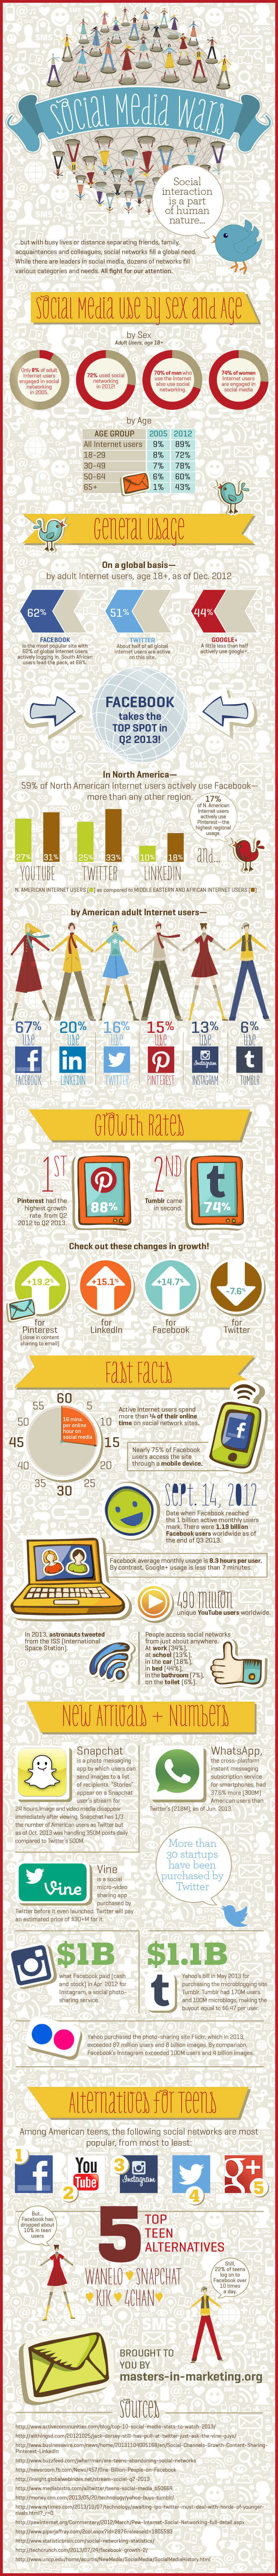 Top Social Media Networks and Internet Users Infographic 2